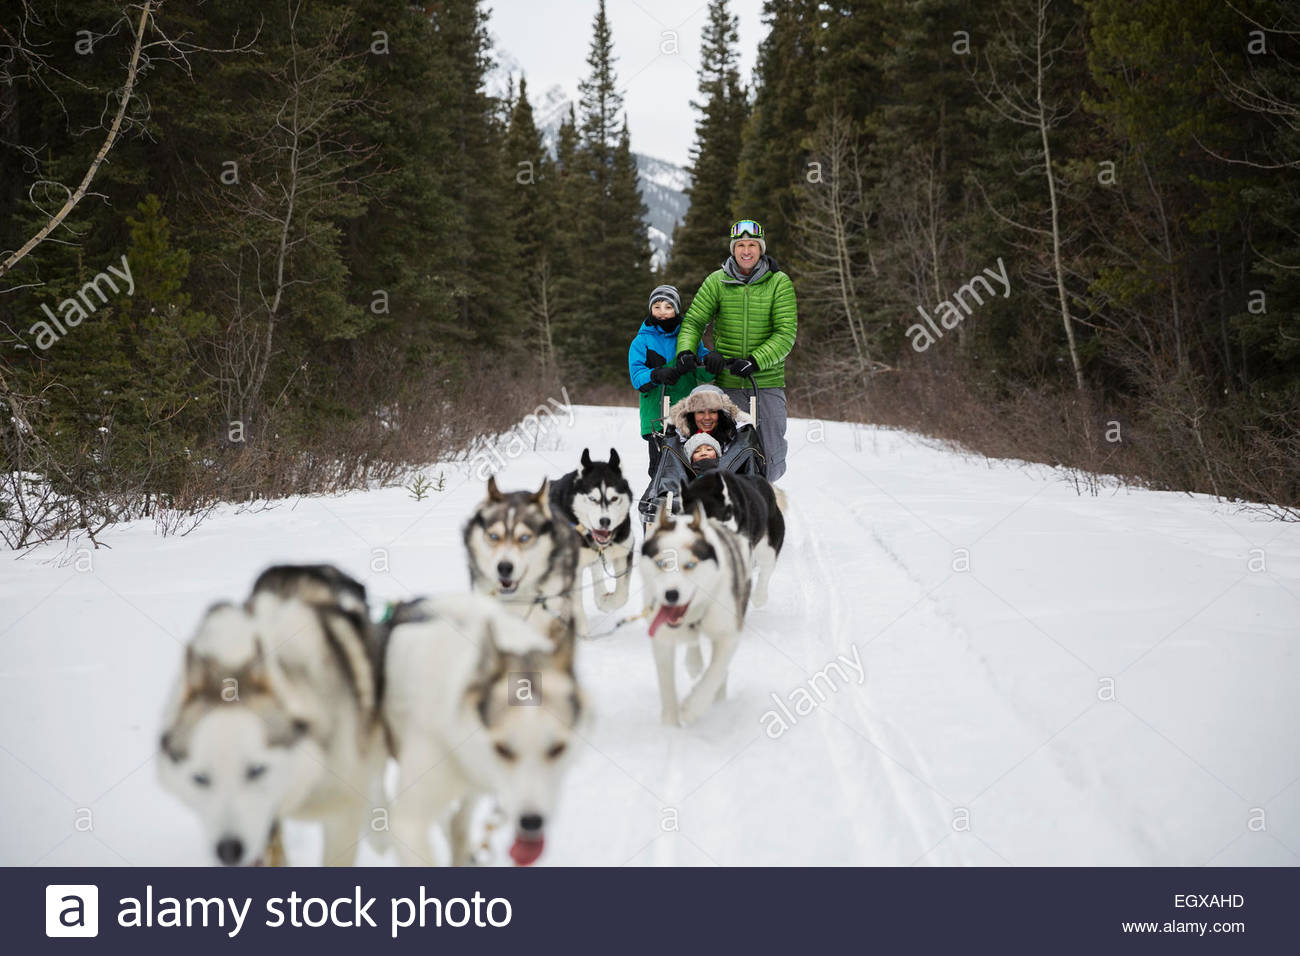 Family dogsledding in snow - Stock Image